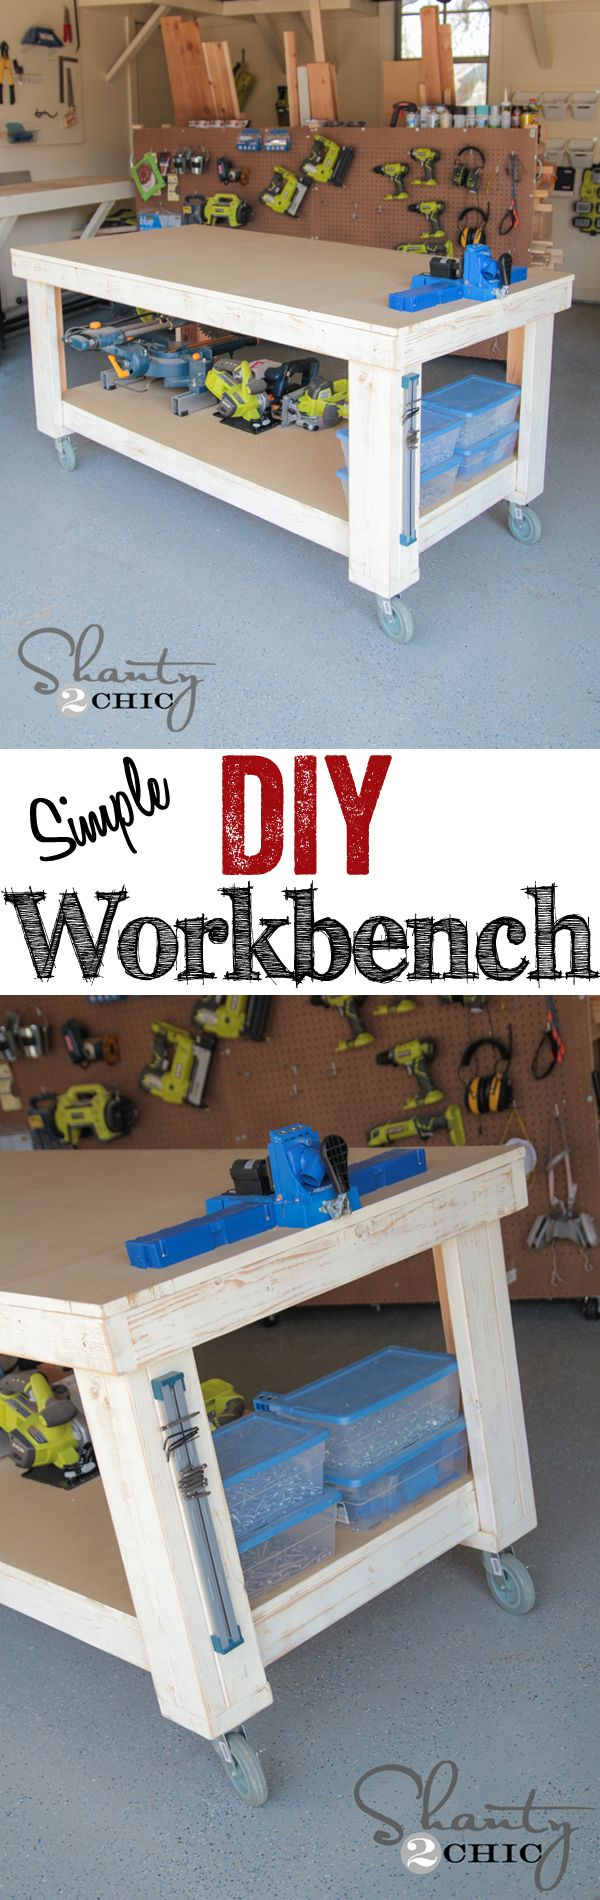 garage benchtop ideas - Workbenches on Pinterest